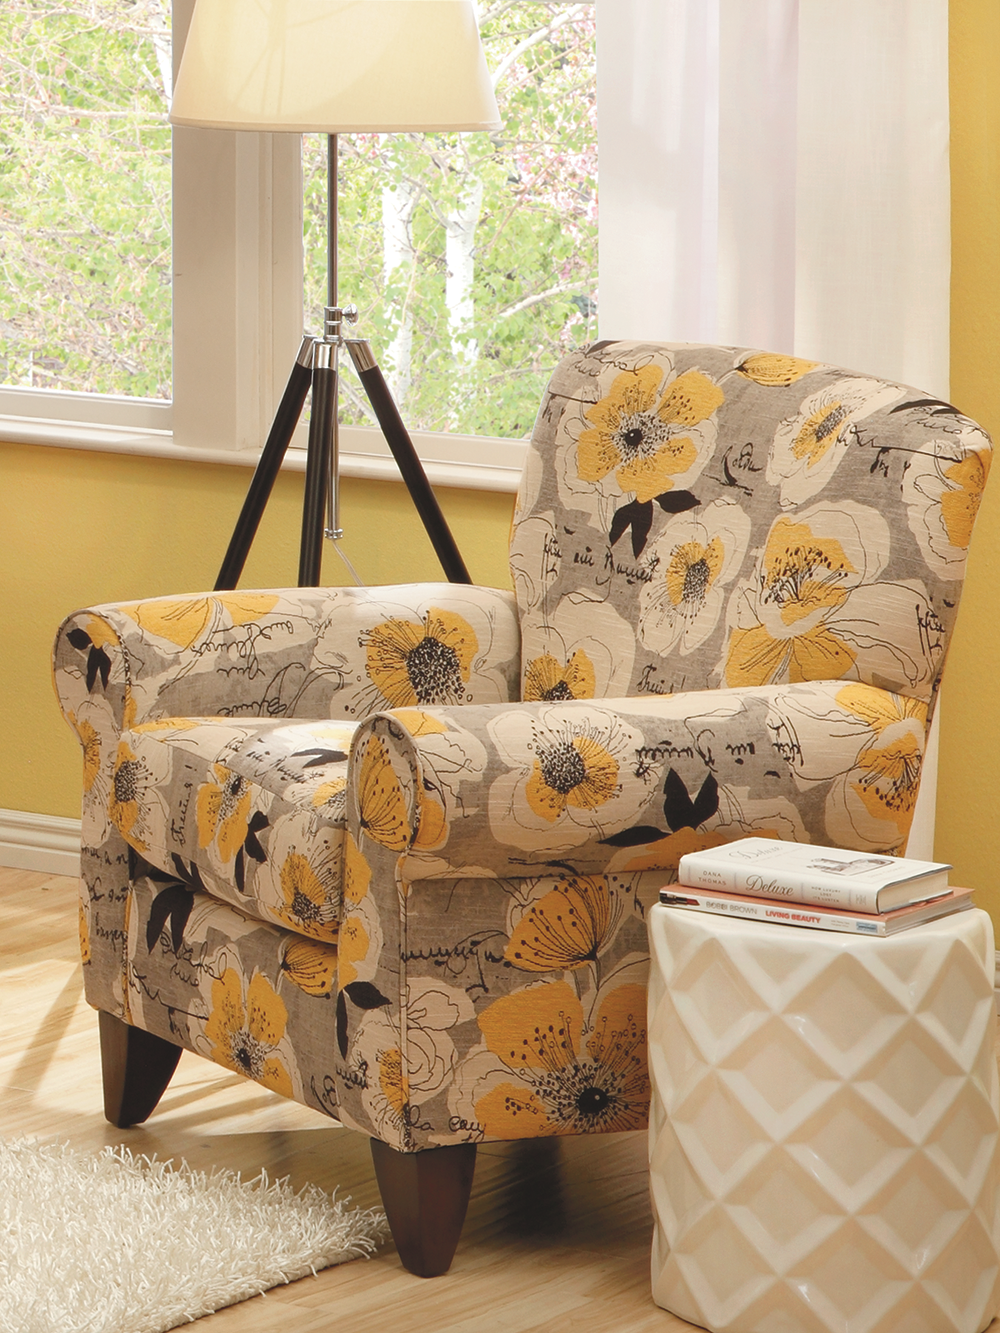 How to Choose the Right Accent Chair - Home is Here